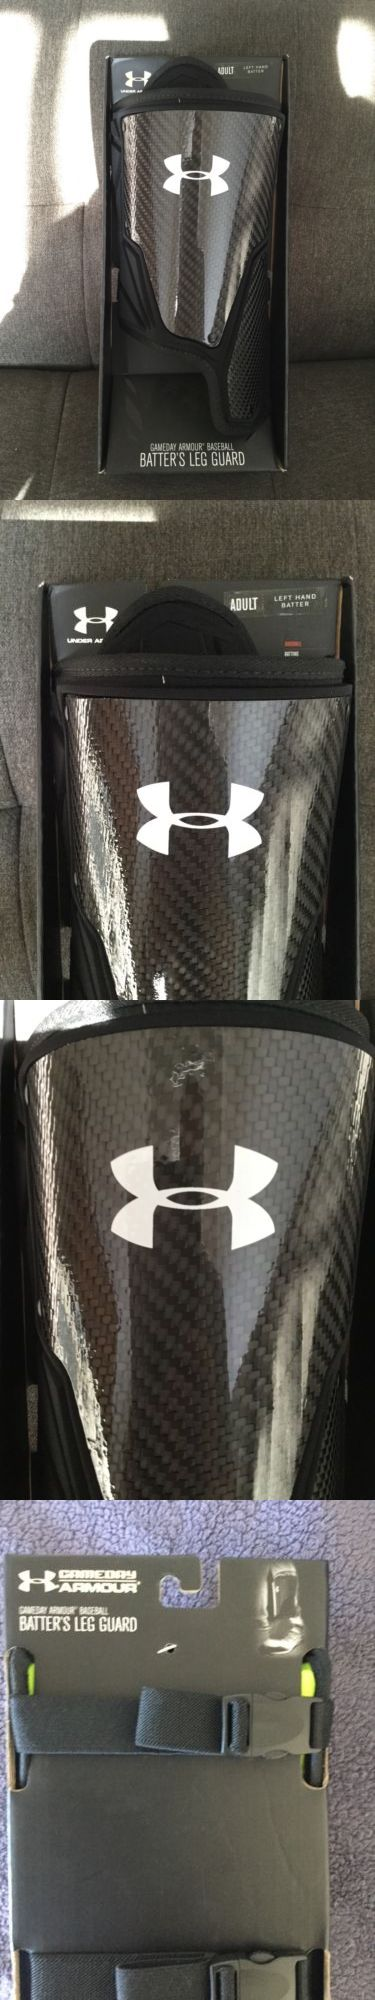 Other Baseball Protective Gear 181317: New Under Armour Adult Left Handed Batter Hitter Gameday Baseball Leg Guard -> BUY IT NOW ONLY: $47.99 on eBay!